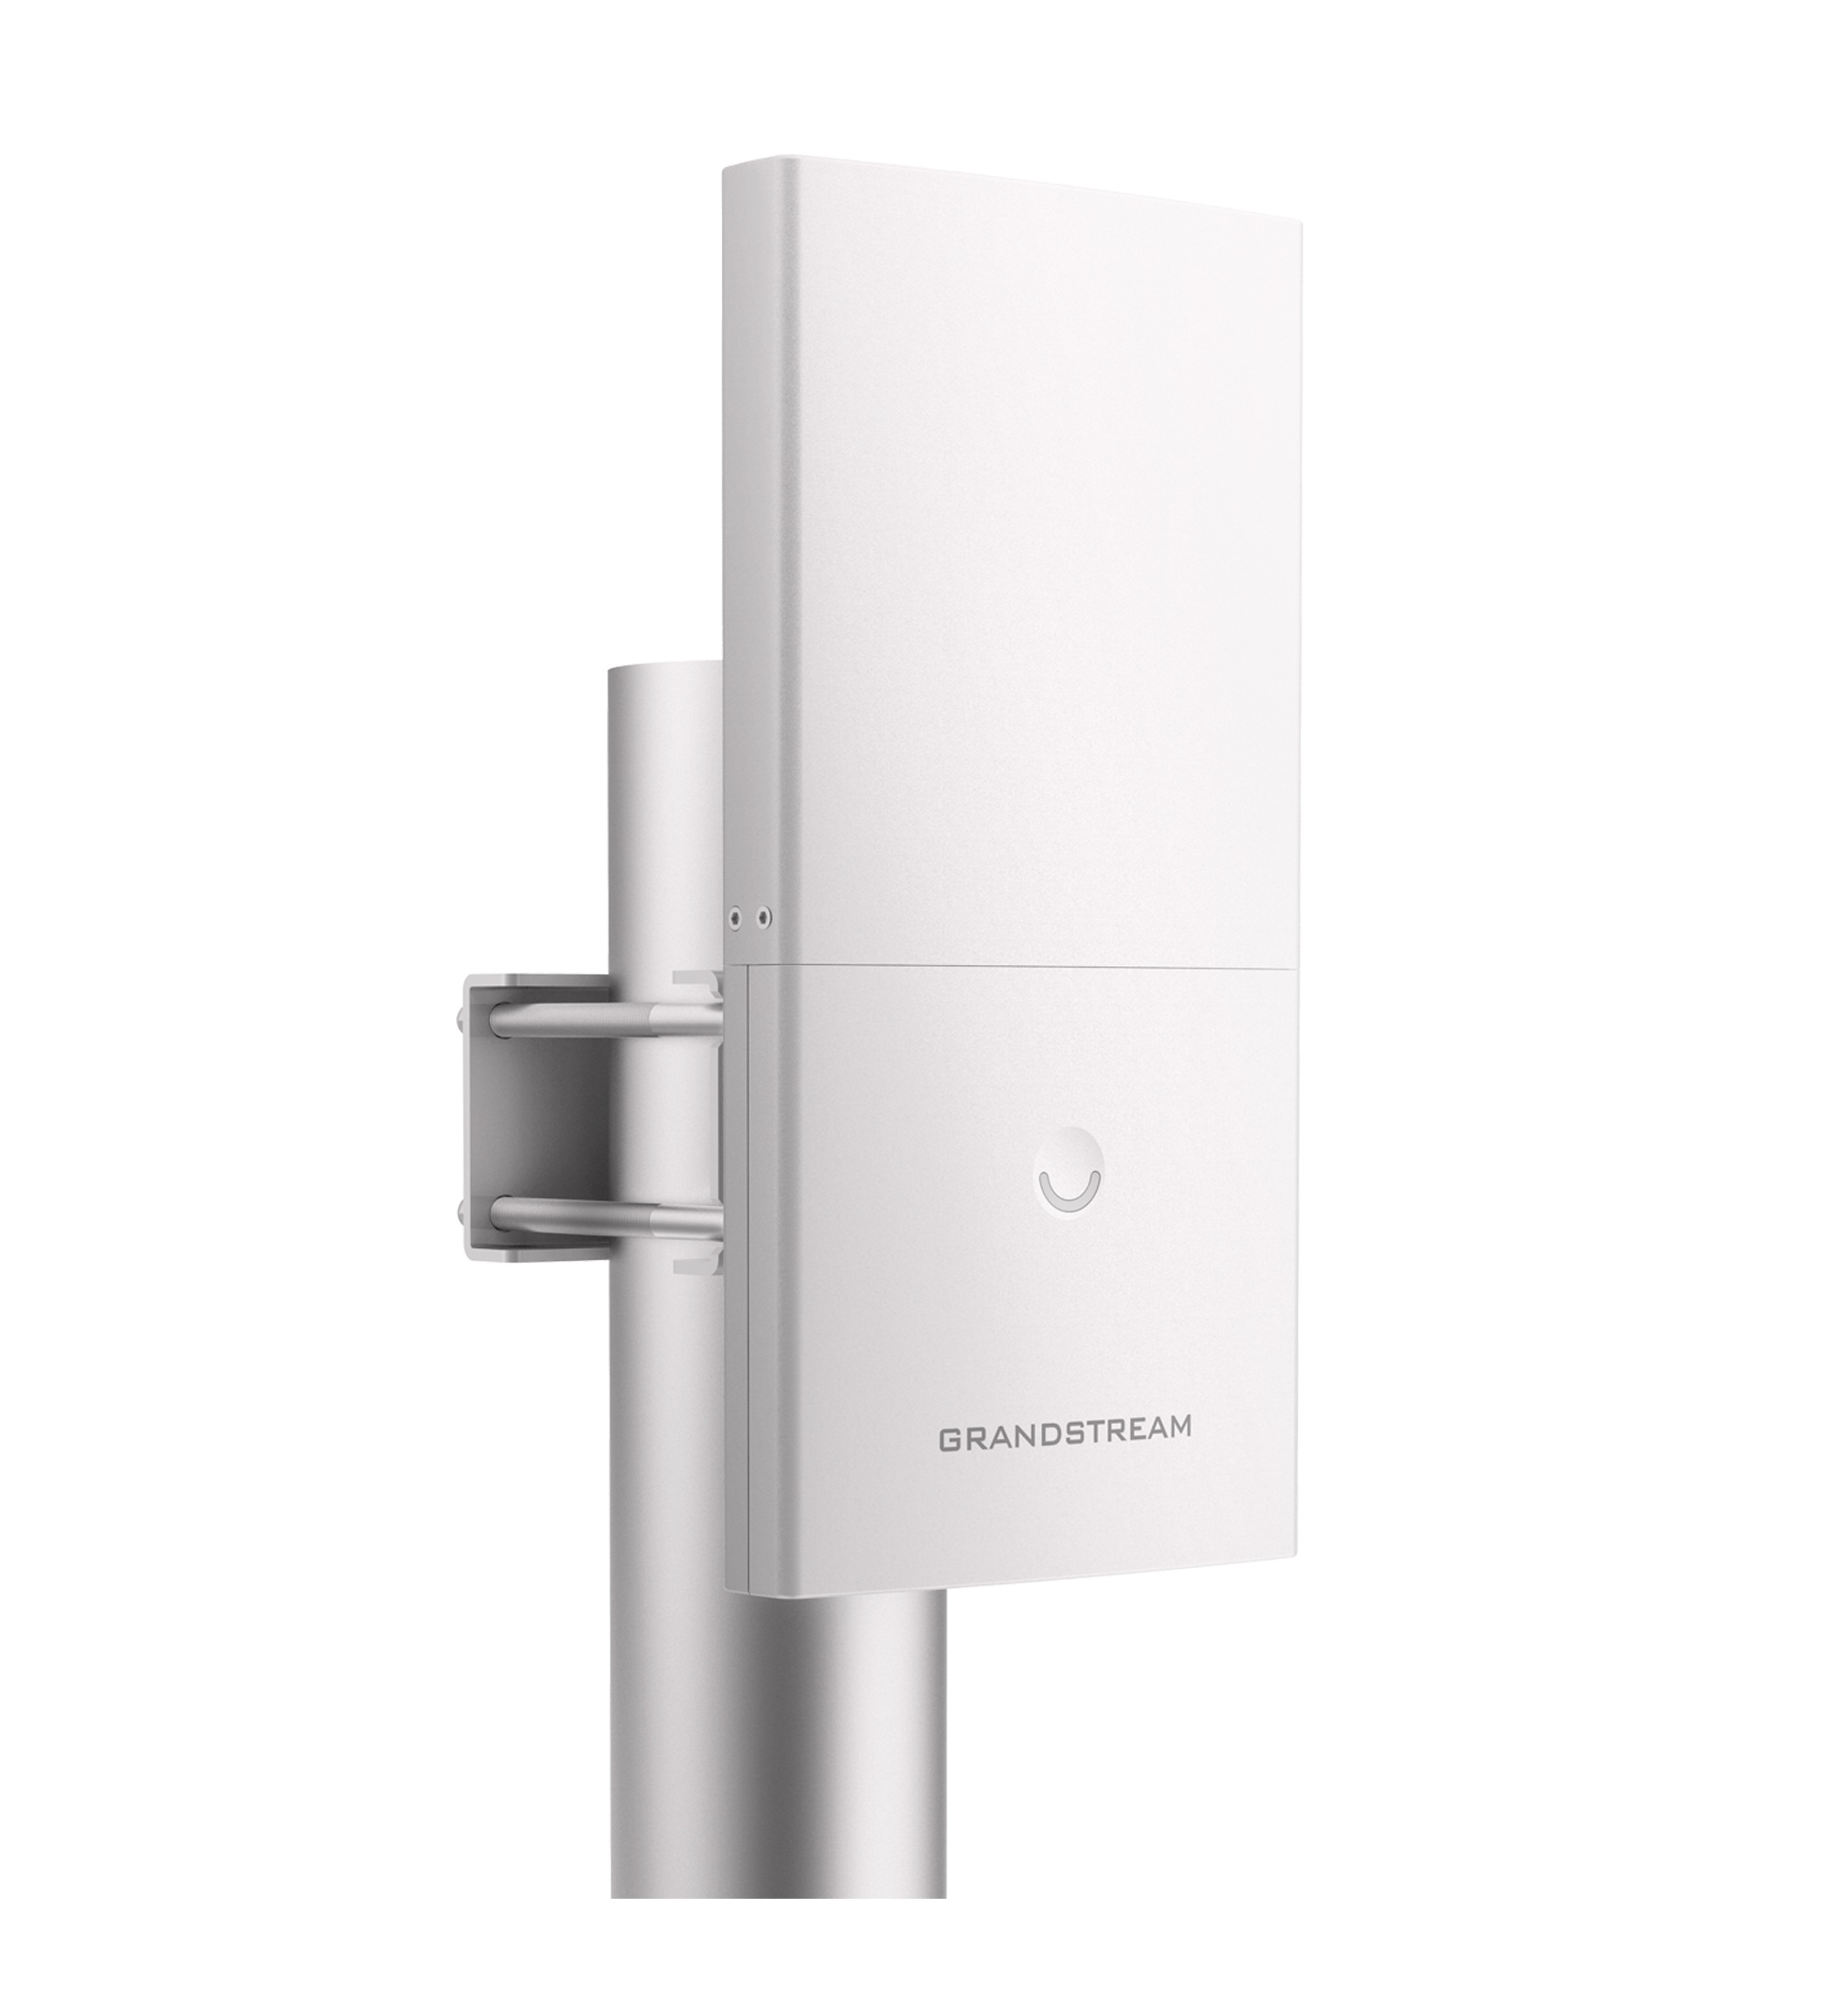 Grandstream Outdoor Long Range 802.11ac Wave-2 WiF Access Point WLAN 1,27 Gbps Power over Ethernet Kabellos Außenbereich